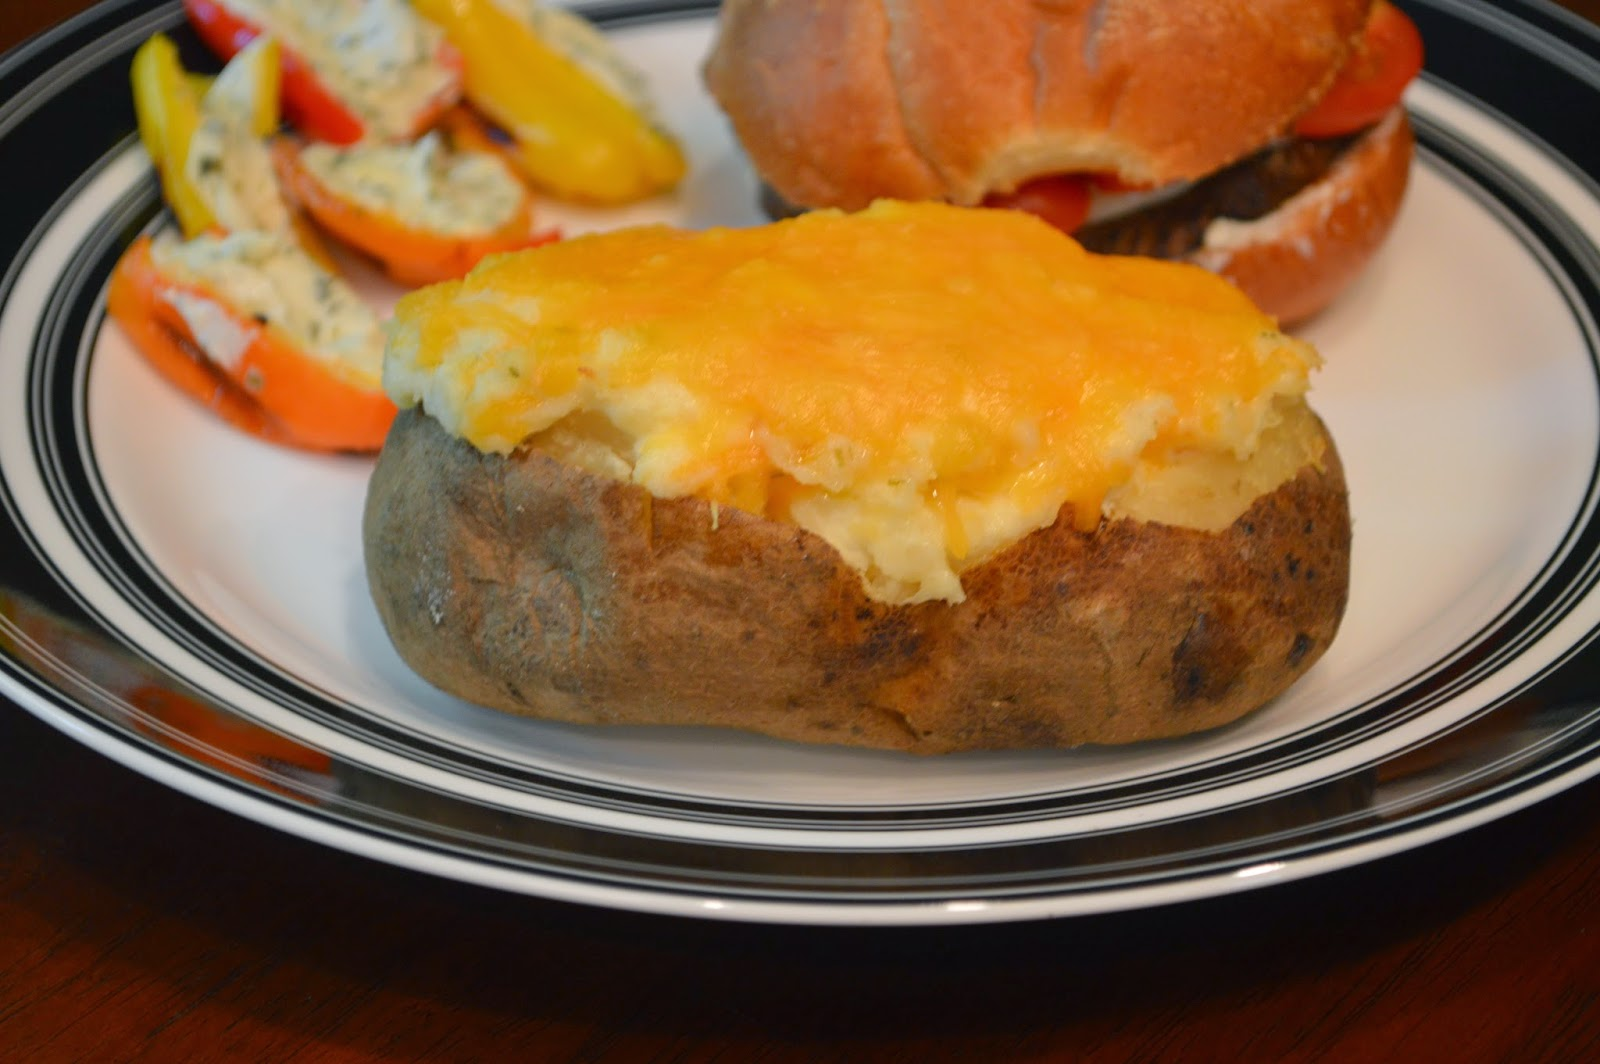 ... - From My Kitchen To Yours: Cheesy Overstuffed Twice Baked Potatoes